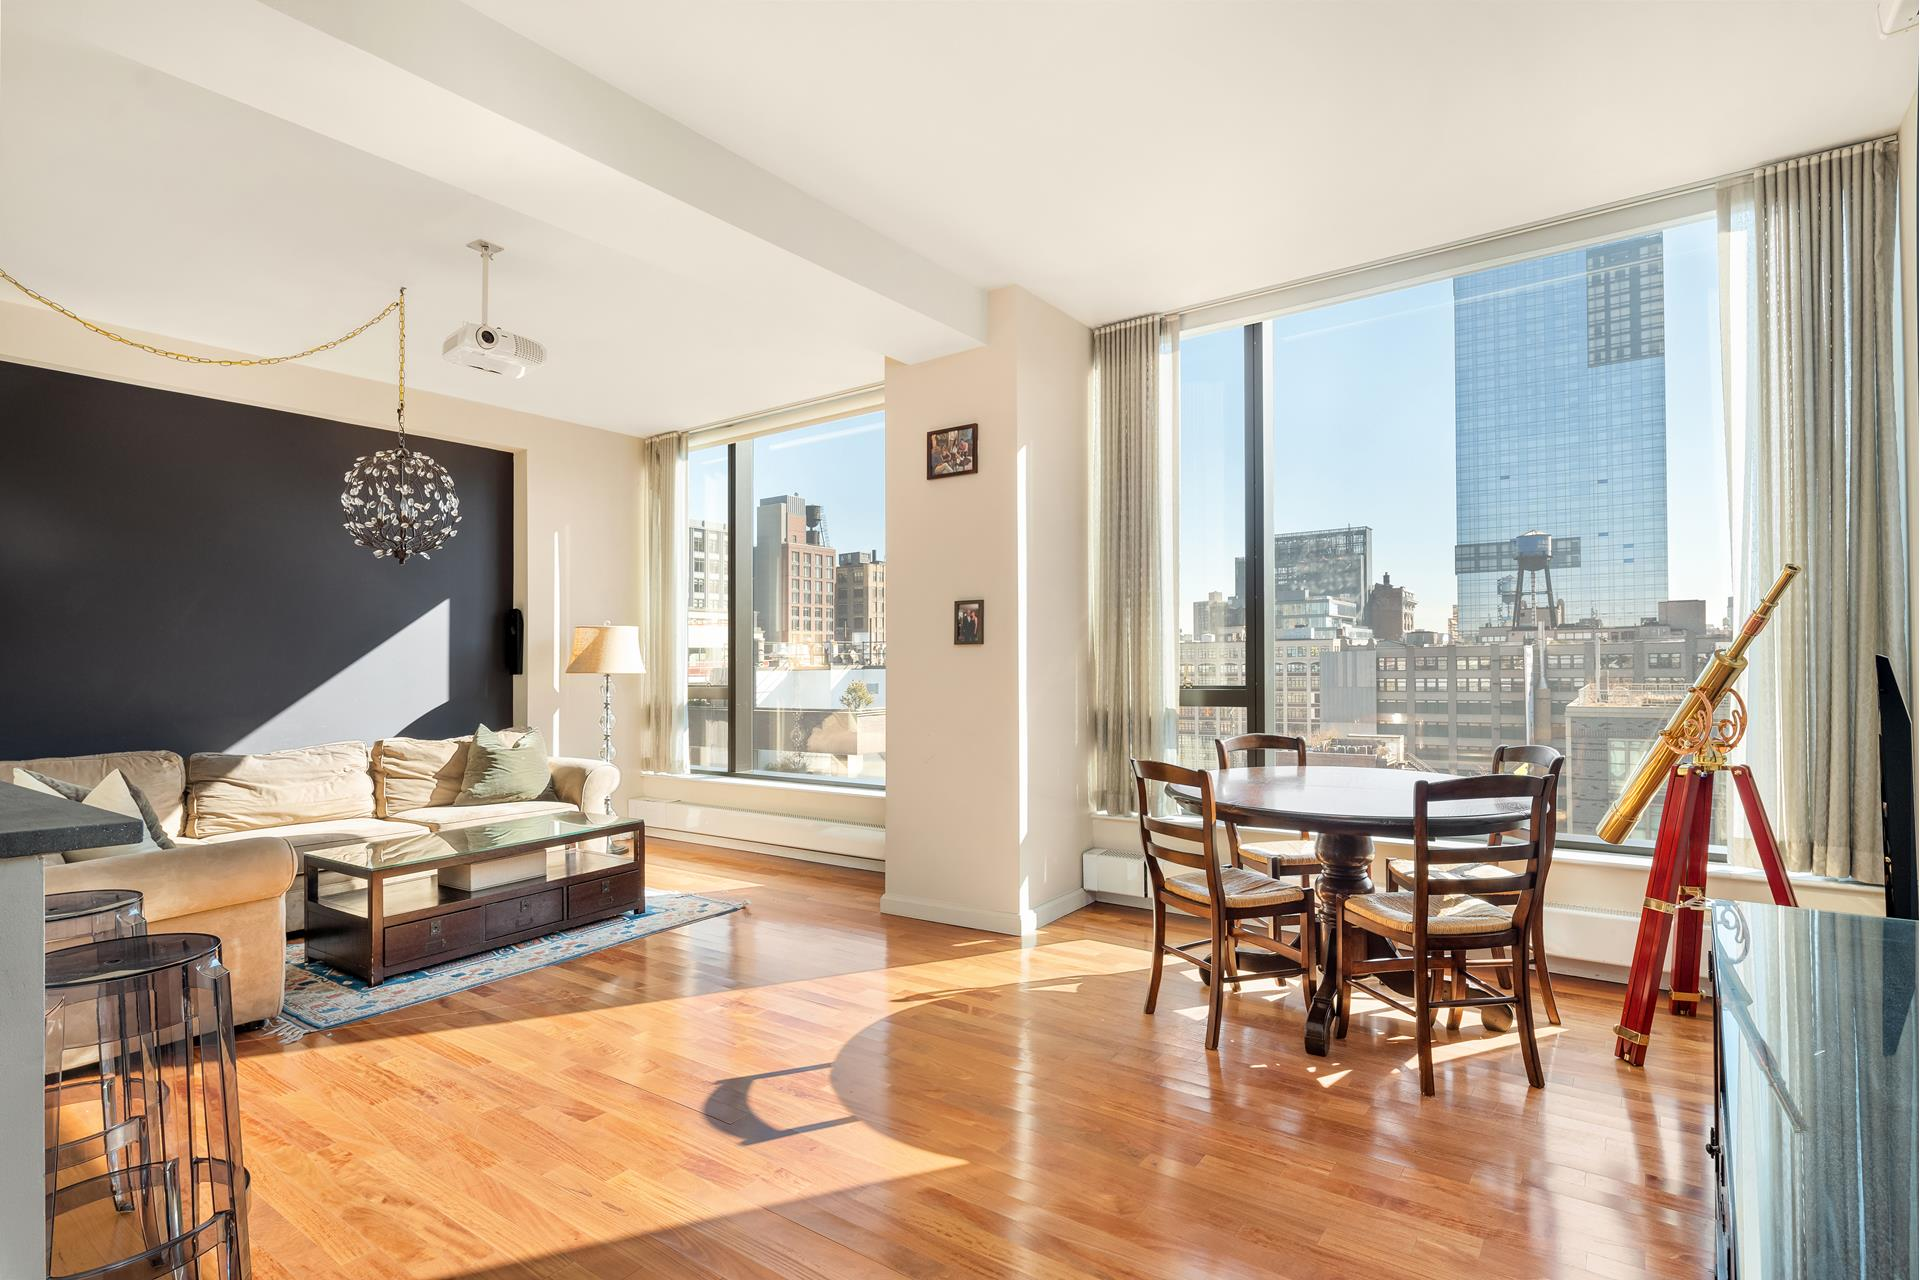 JUST LISTED! Luxury living in West SoHo! Bright, open and oversized apartment in one of downtown's most highly sought neighborhoods! Spacious condominium apartment has central A/C, Fisher Paykel range, Bosch dishwasher, Sub-Zero fridge, wine refrigerator, garbage disposal, Washer/ Dryer, and a Video/ Intercom messaging system. There are 10 foot ceilings, hardwood floors and exceptional closet space.Both the oversized living room and large master bedroom have serene open city views facing East. The building features a 24-hour doorman/ concierge, fitness center, pet spa, zen-meditation garden, children's playroom, bike storage and private resident storage. Situated between the Hudson River, Tribeca, the West Village and prime SoHo, 505 Greenwich is accessible to the best of Lower Manhattan.